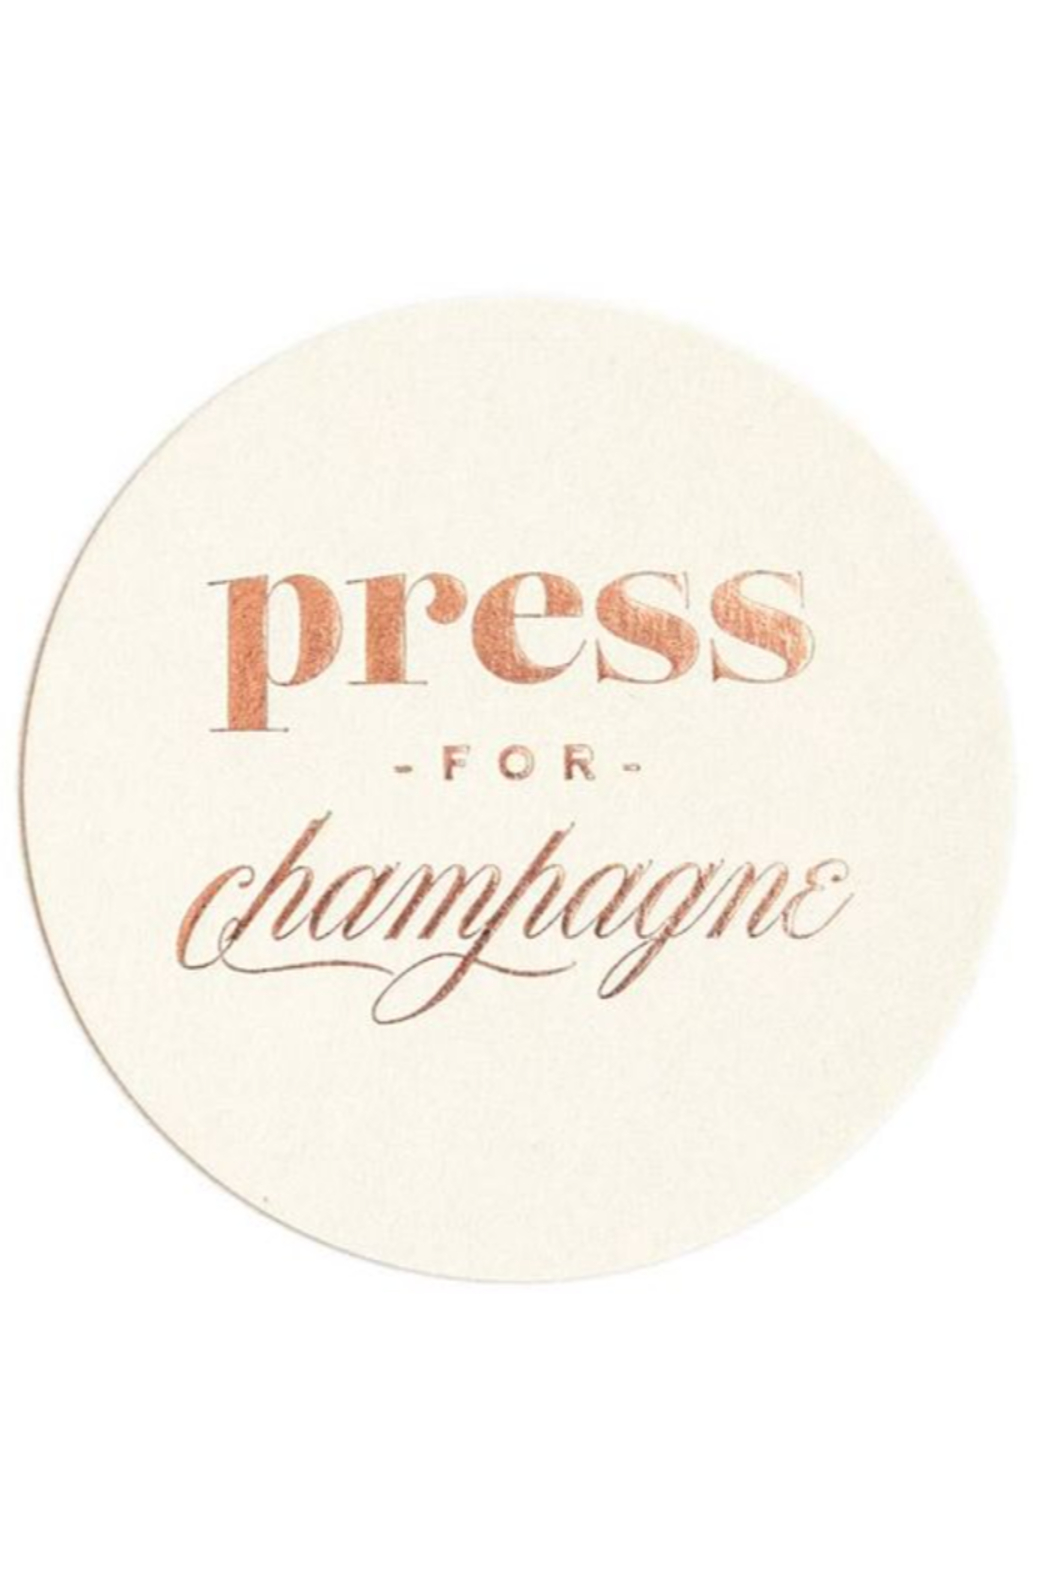 Lyn -Maree's Press for Champagne - Foil Coaster Set, Champagne Gift - Main Image